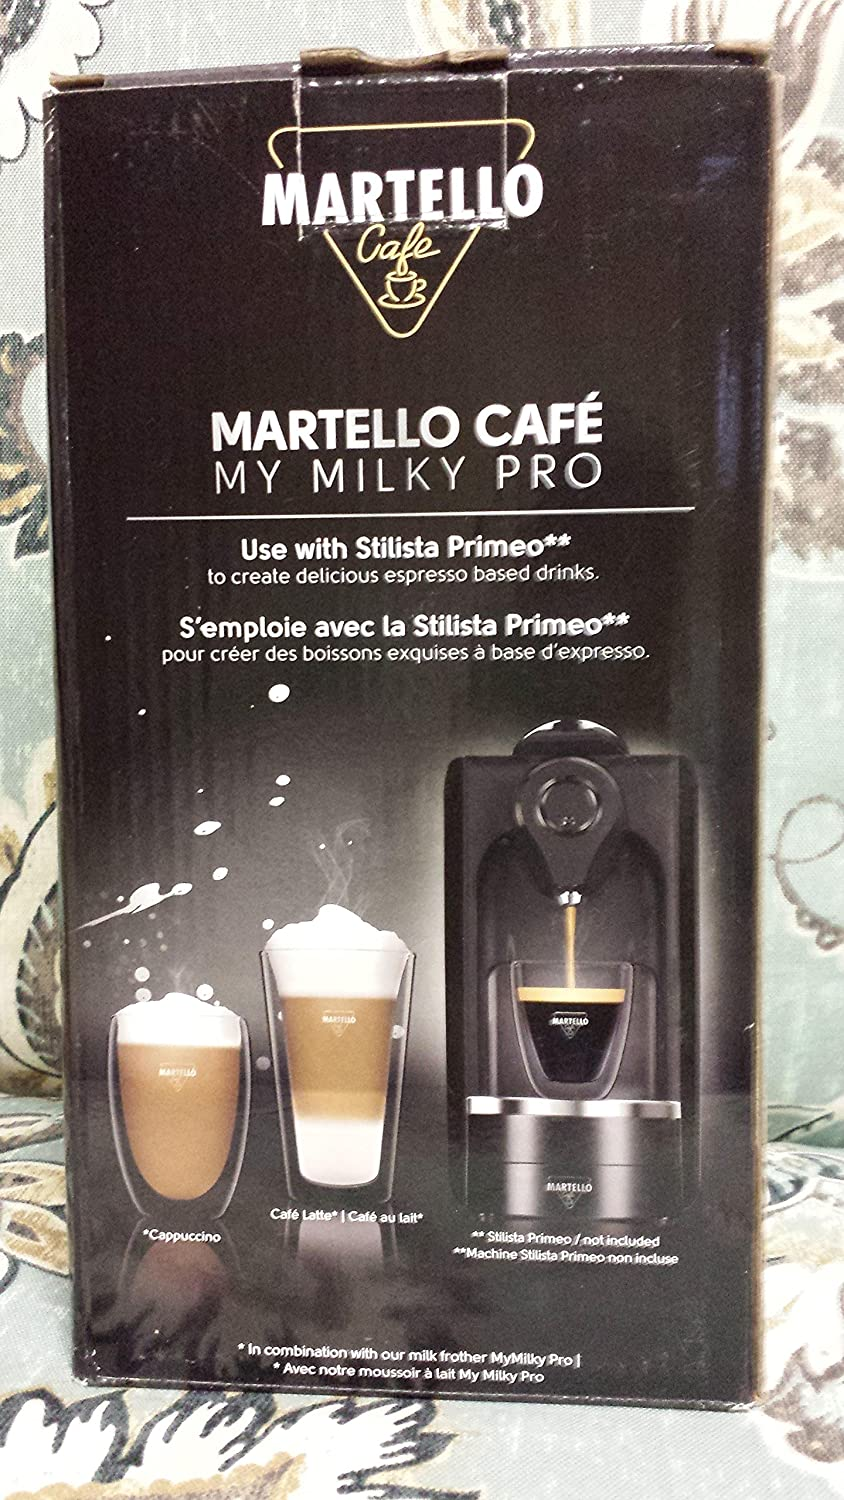 Amazon.com: Martello Cafe My Milky Pro: Kitchen & Dining